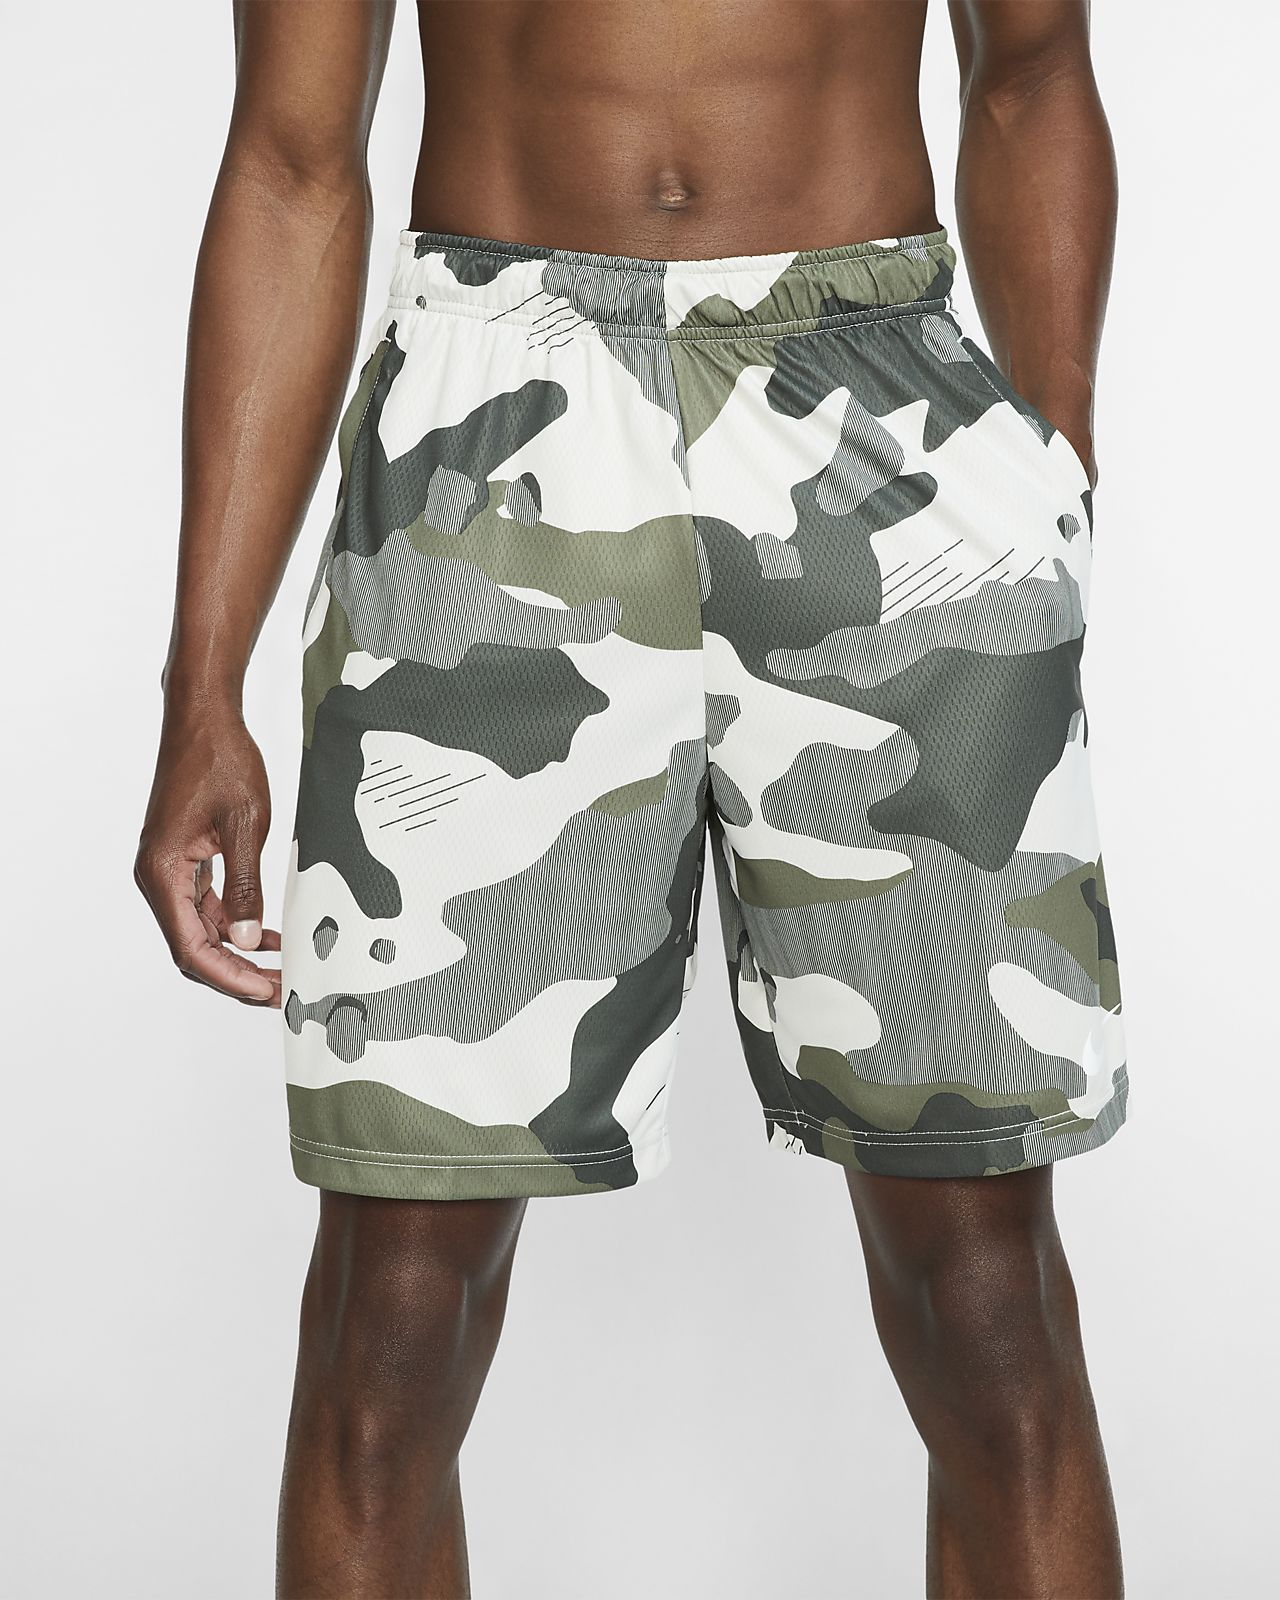 Nike Dri-FIT Men's Camo Training Shorts